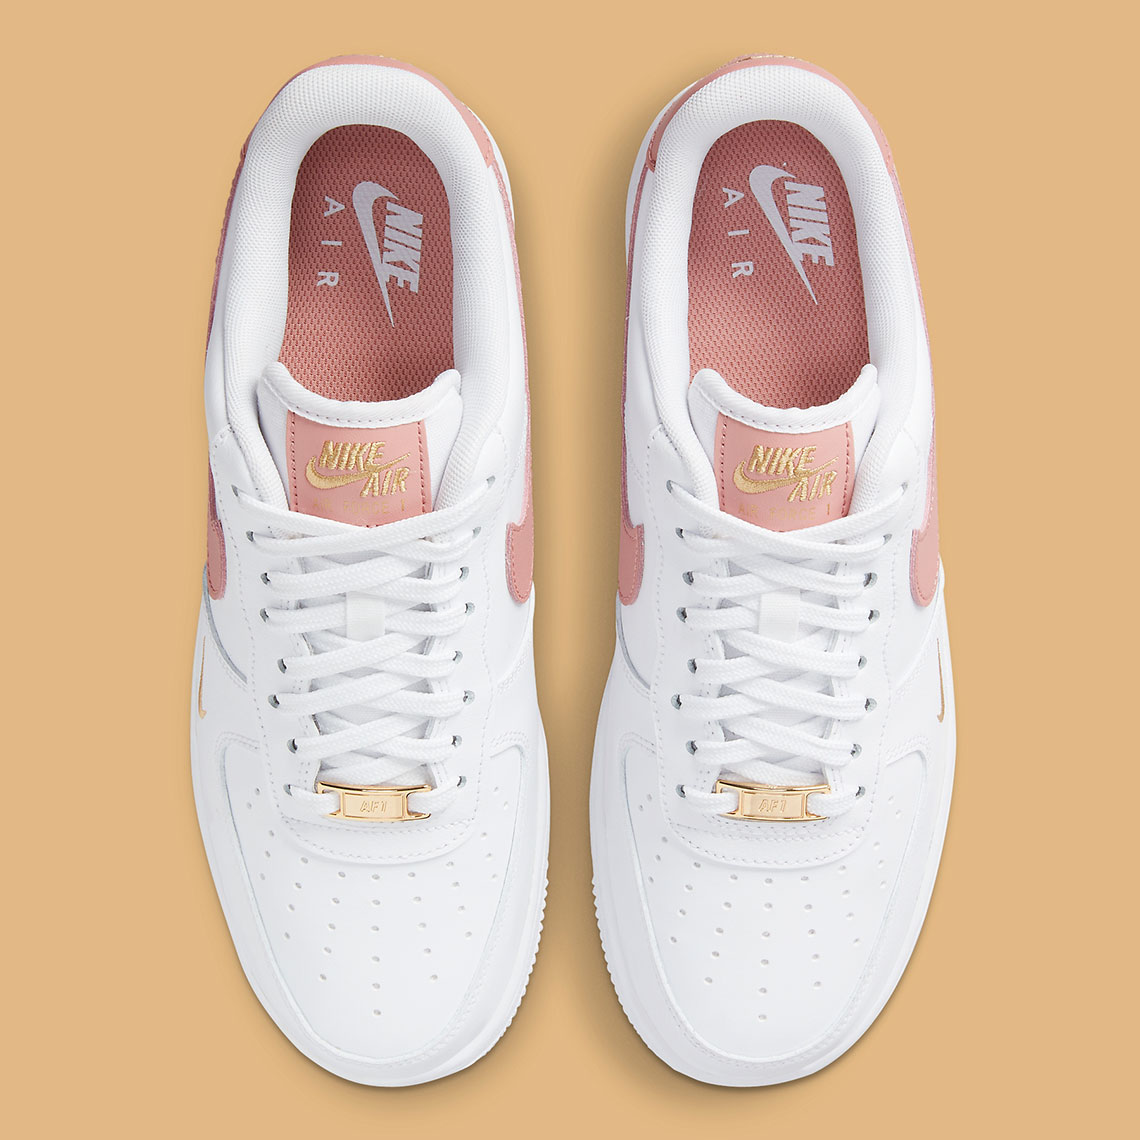 Nike Air Force 1 Low Blanche / Rouille Rose CZ0270-103 – Crumpe